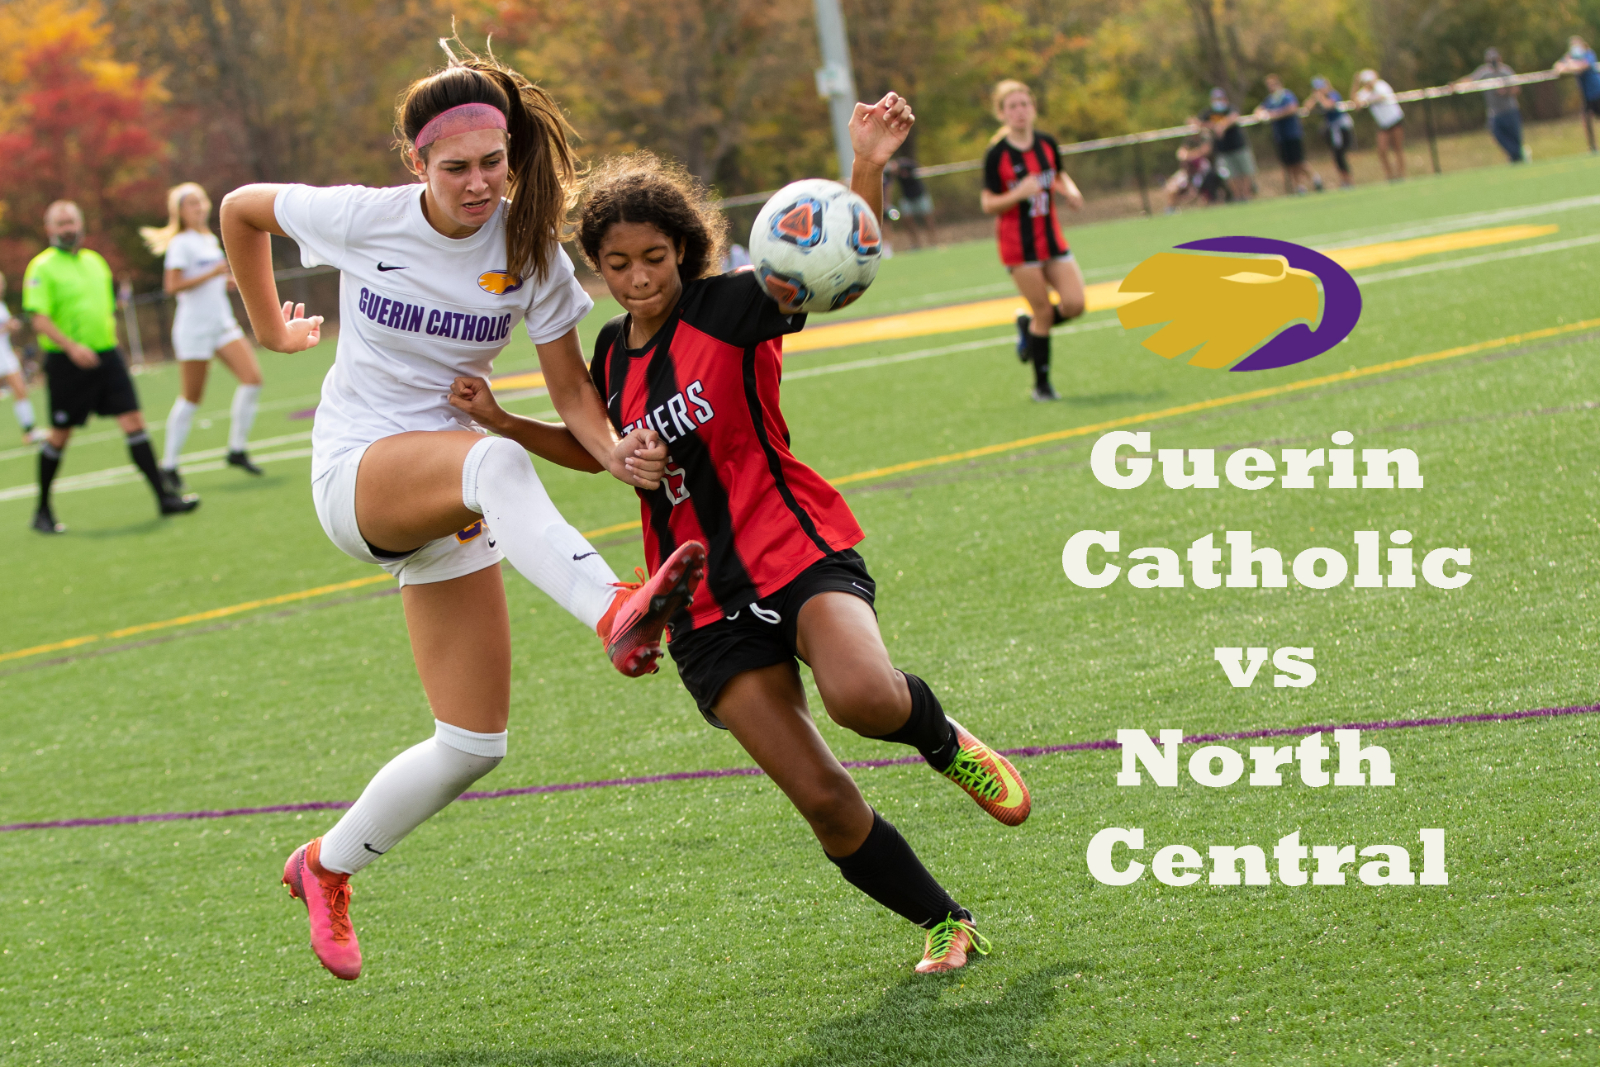 Girls Soccer Sectional vs North Central – Championship